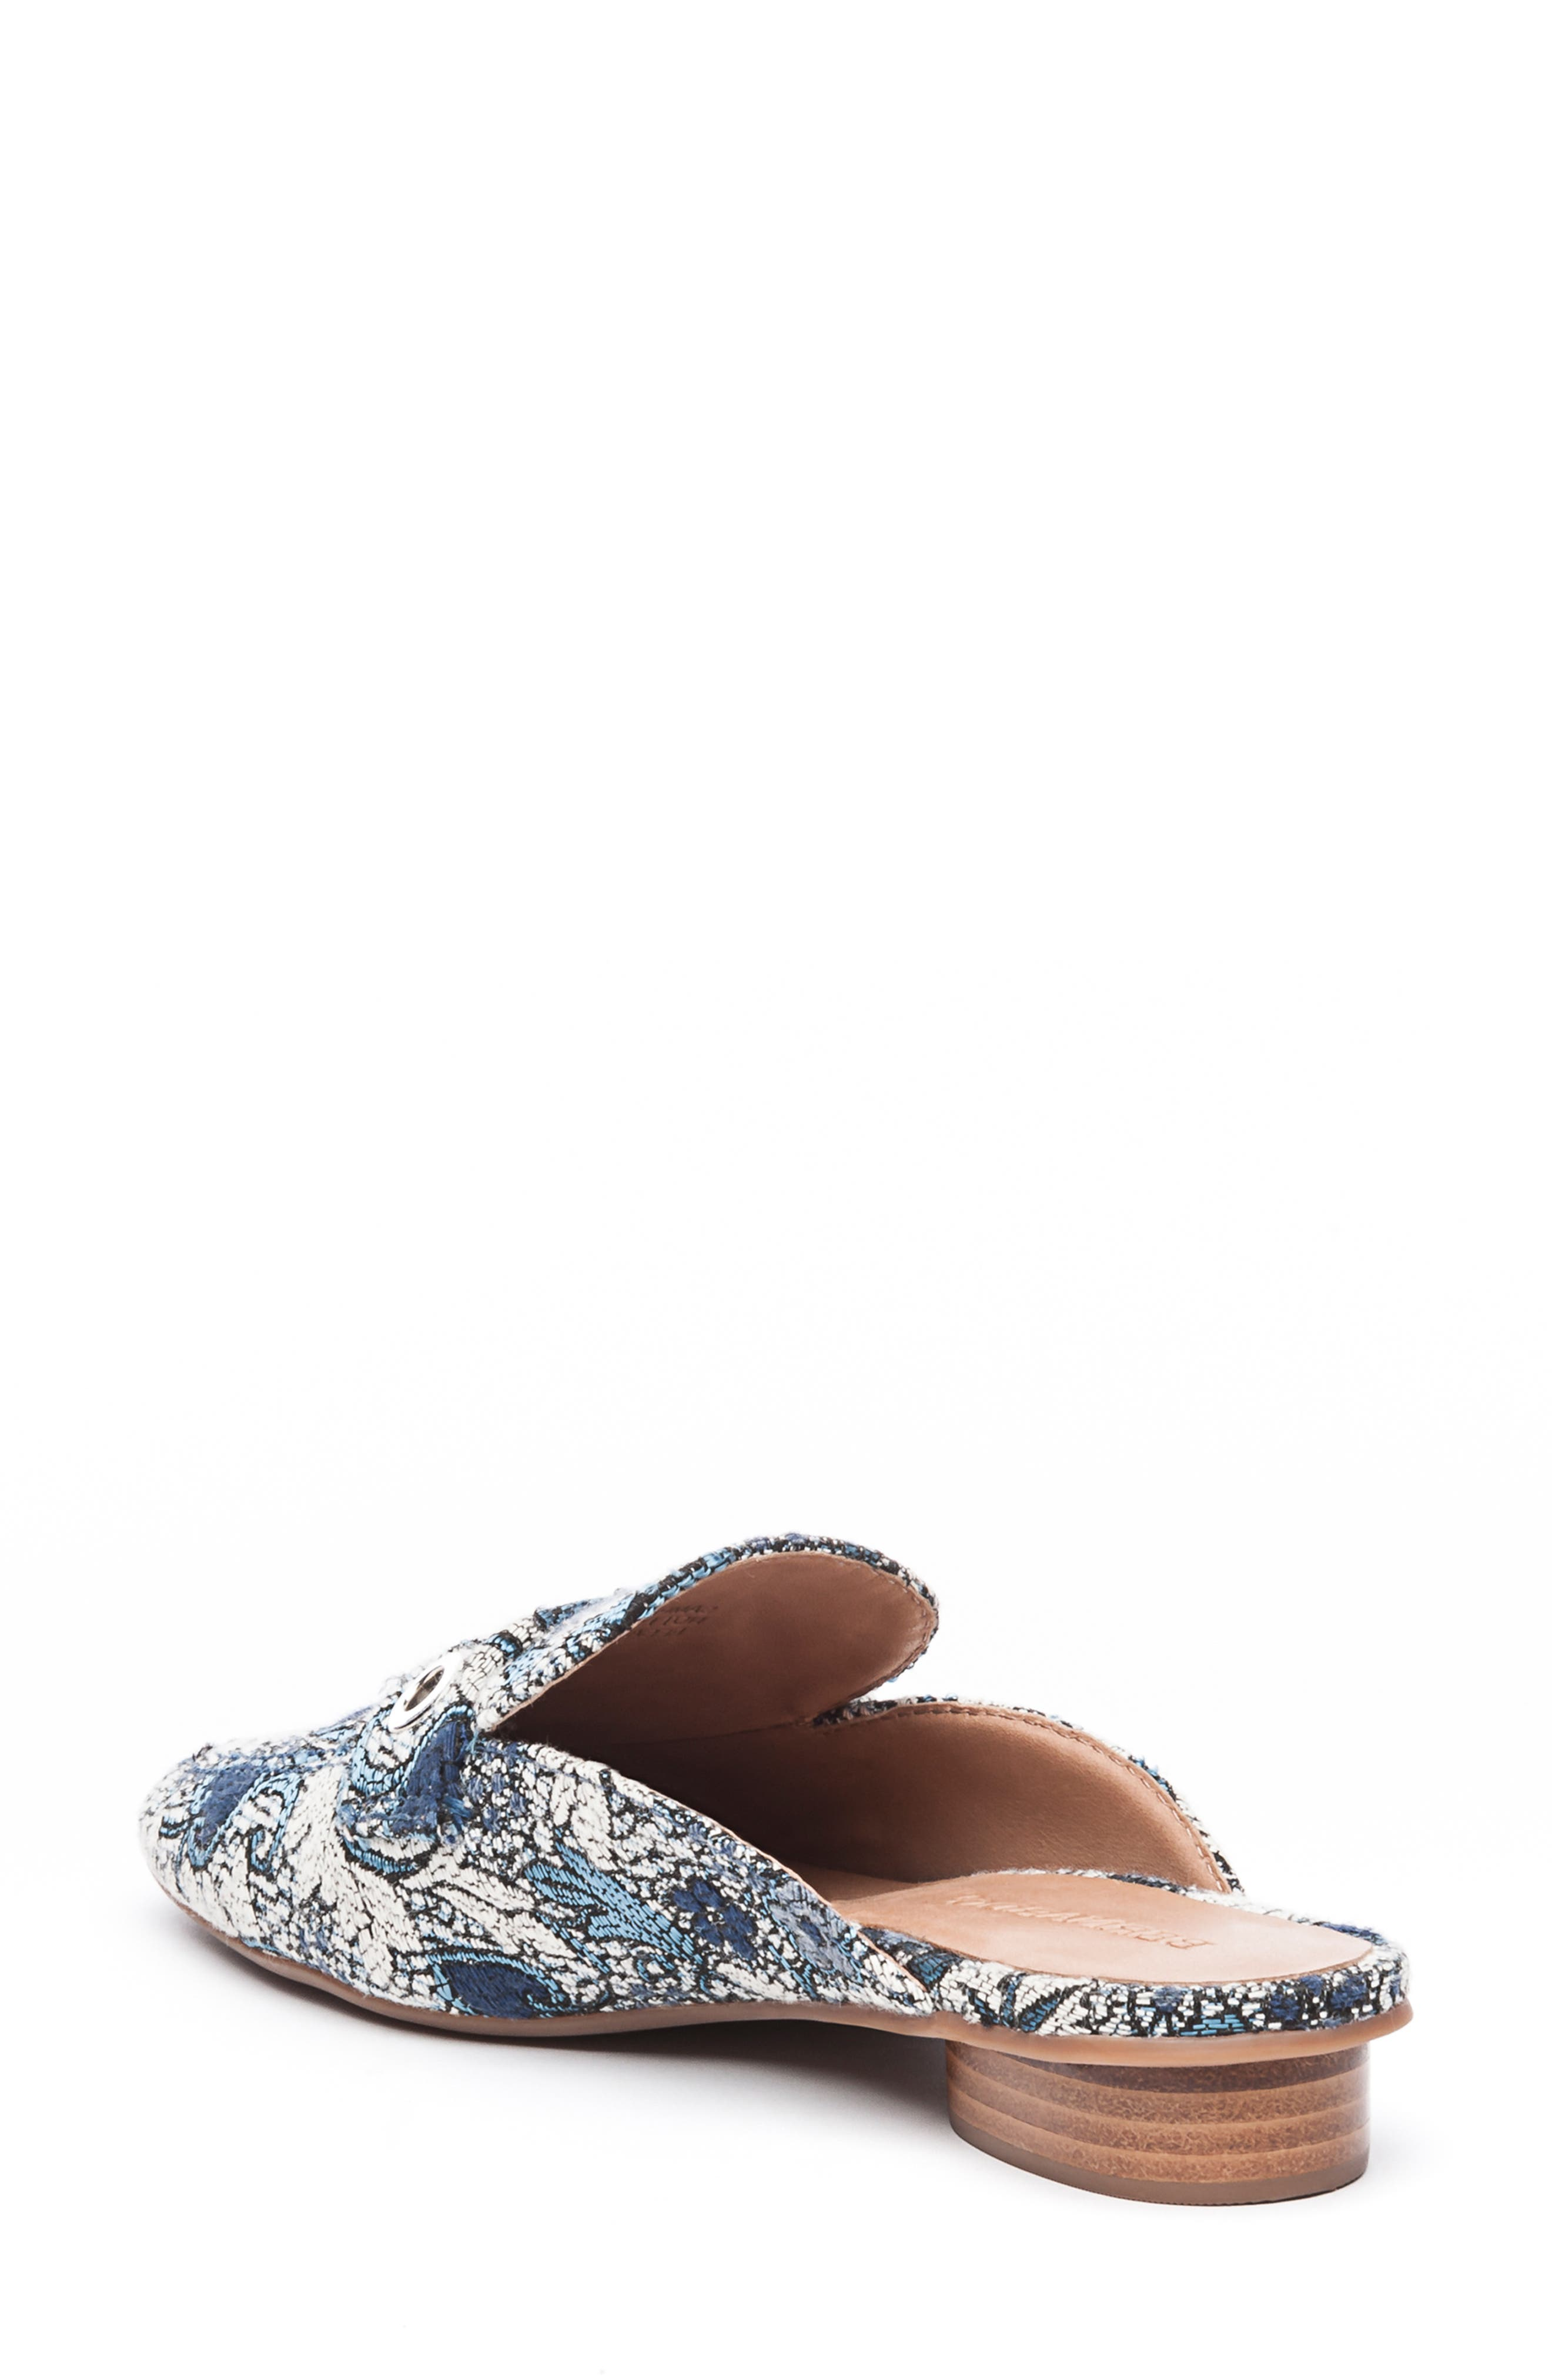 Bernardo Jen Mule,                             Alternate thumbnail 2, color,                             BLUE JACQUARD LEATHER